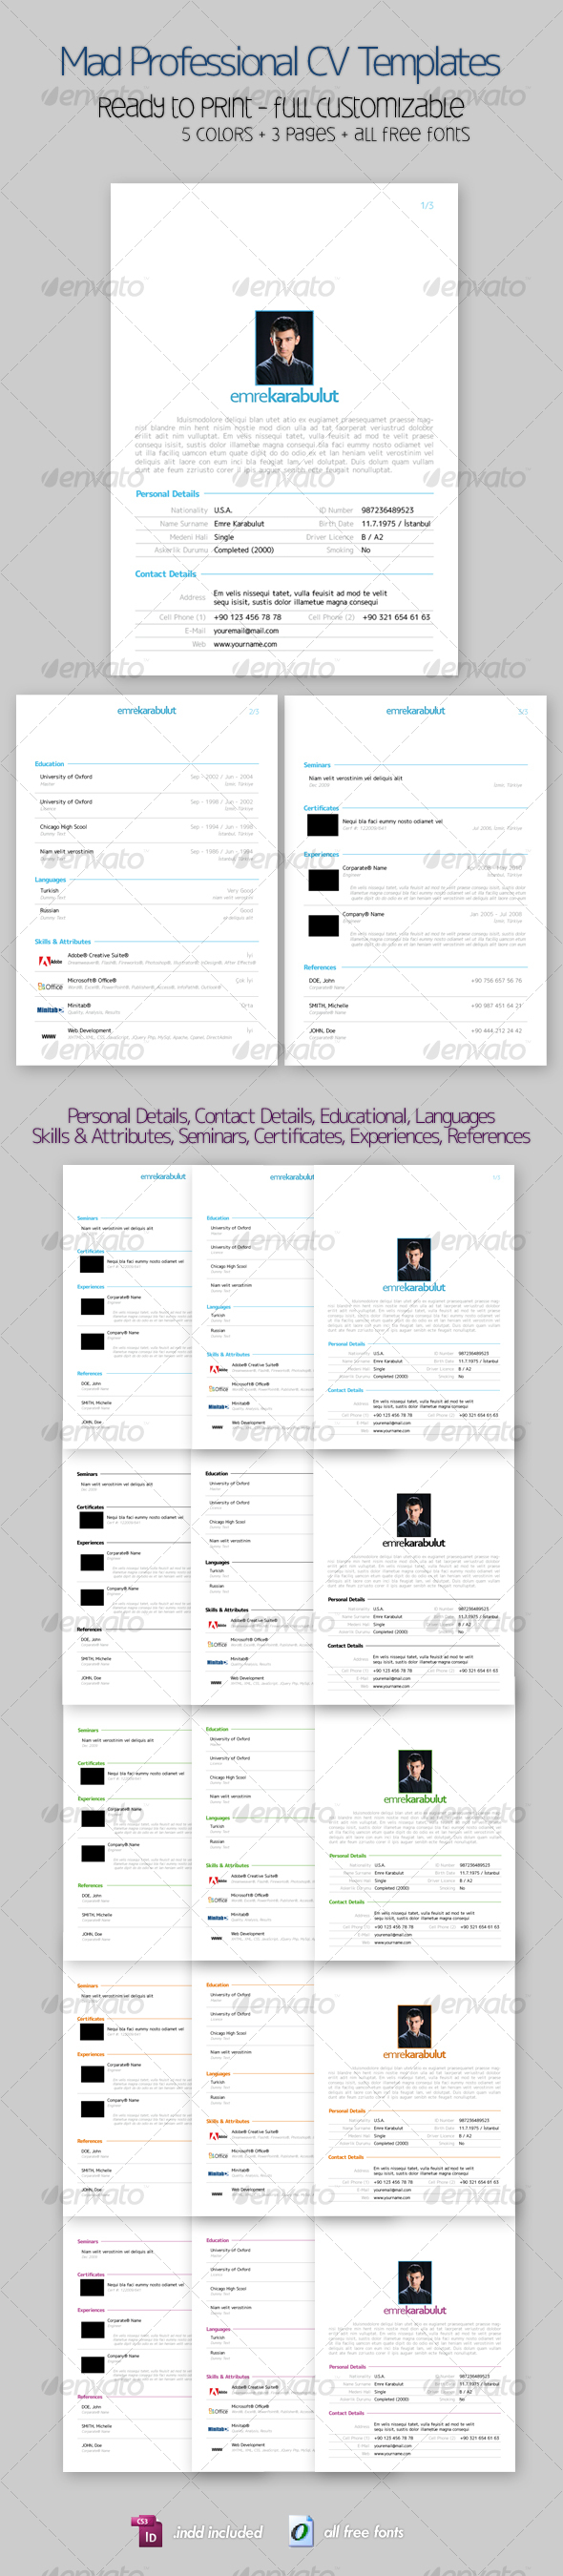 Mad Professional Cv Template with 5 Color, 3 Pages - Miscellaneous Print Templates